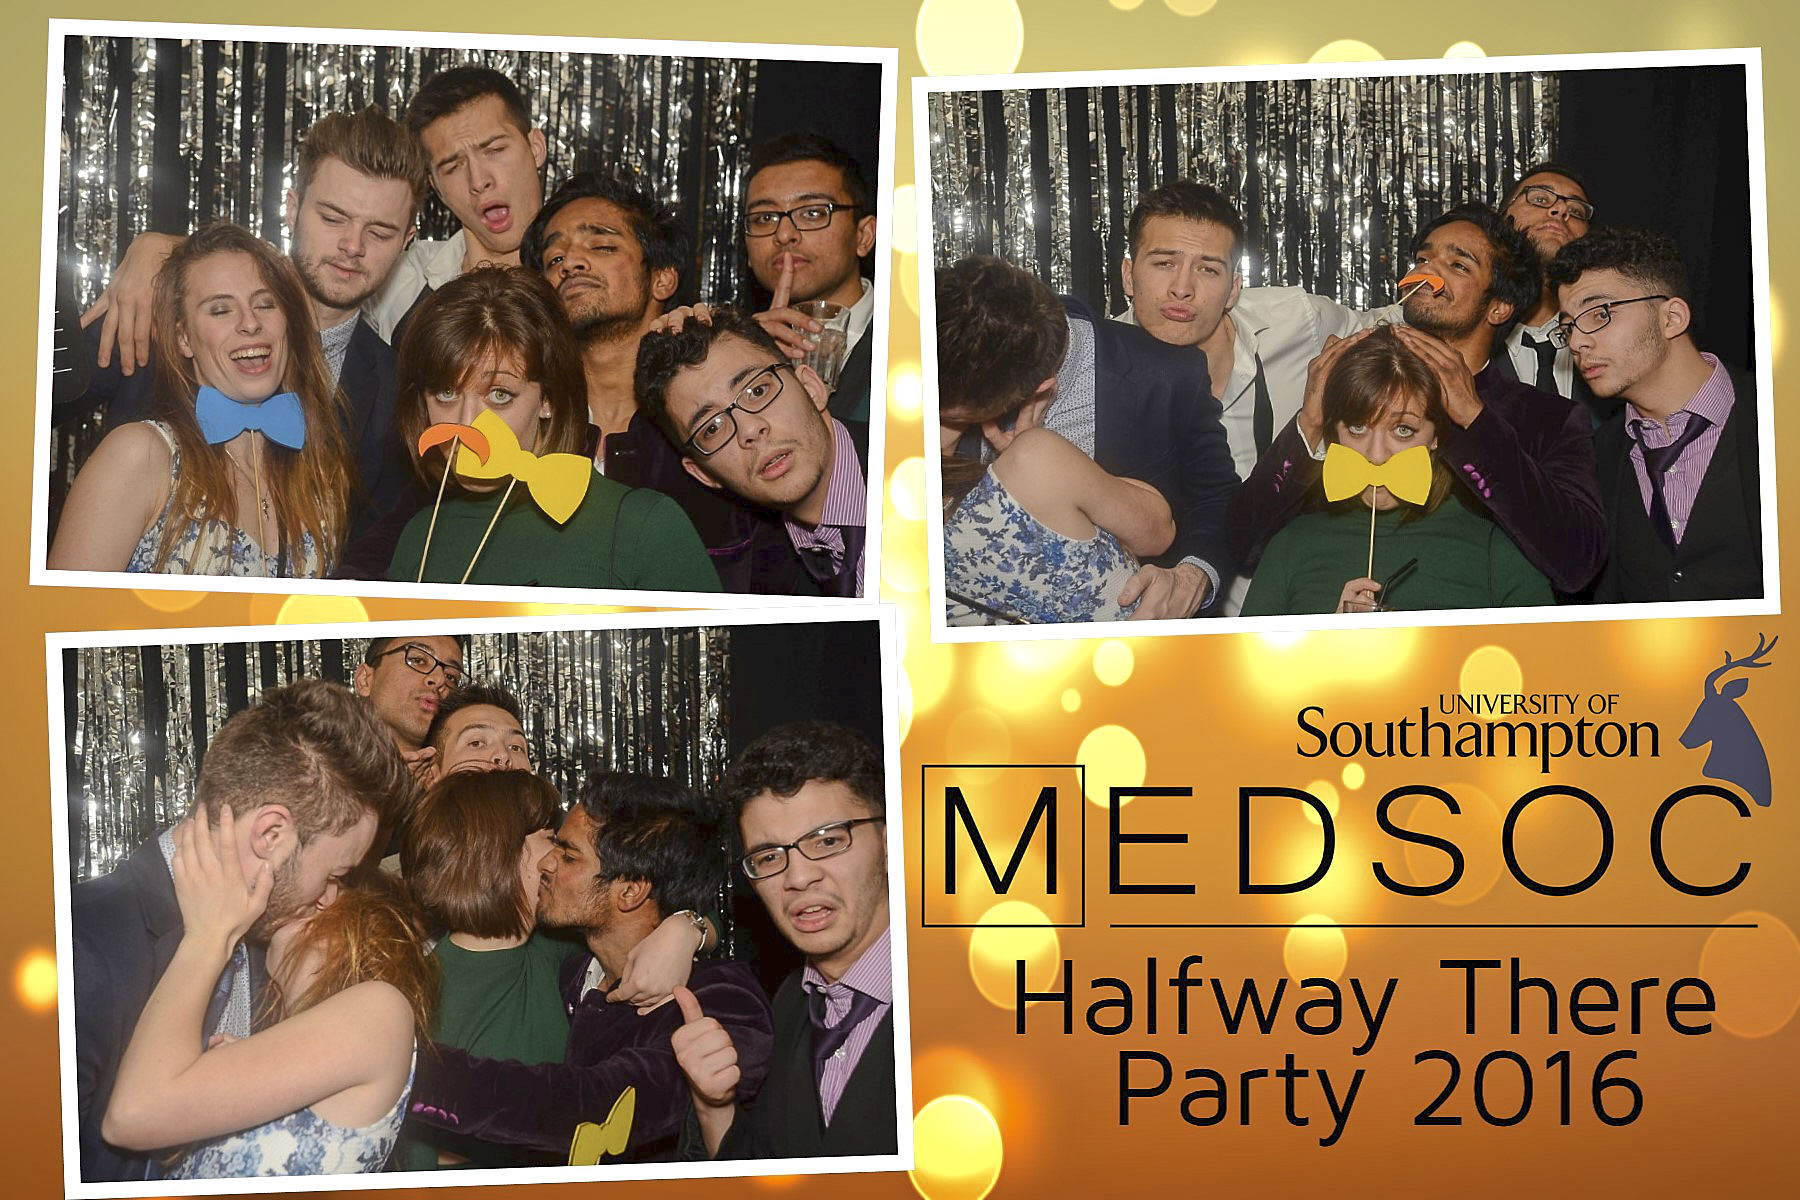 MedSoc Halfway There Party 2016 DS011749.jpg